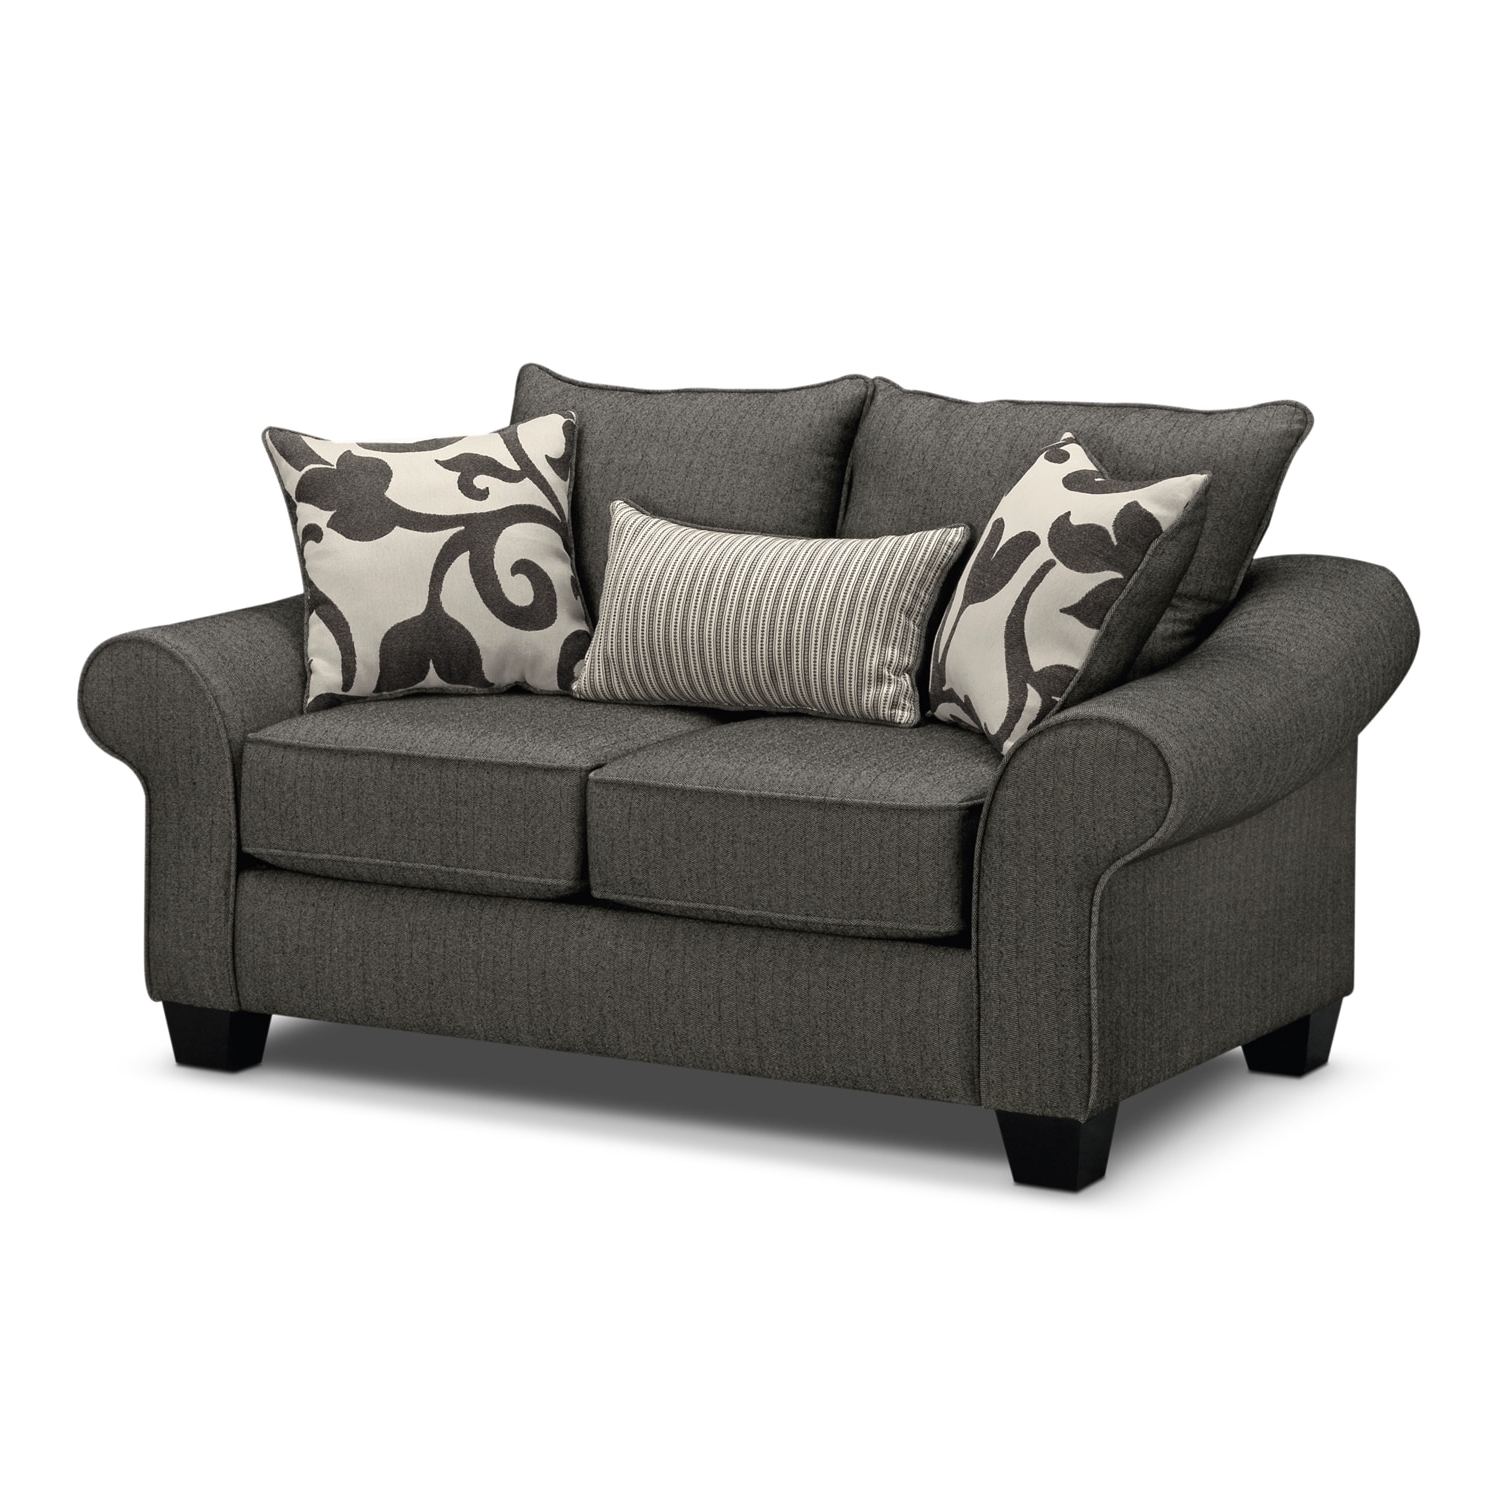 Sectional Sofas In Greensboro Nc Regarding Favorite Furniture : Faraday Sofa Ashley Furniture Ethan Allen Sofa Table (View 13 of 20)